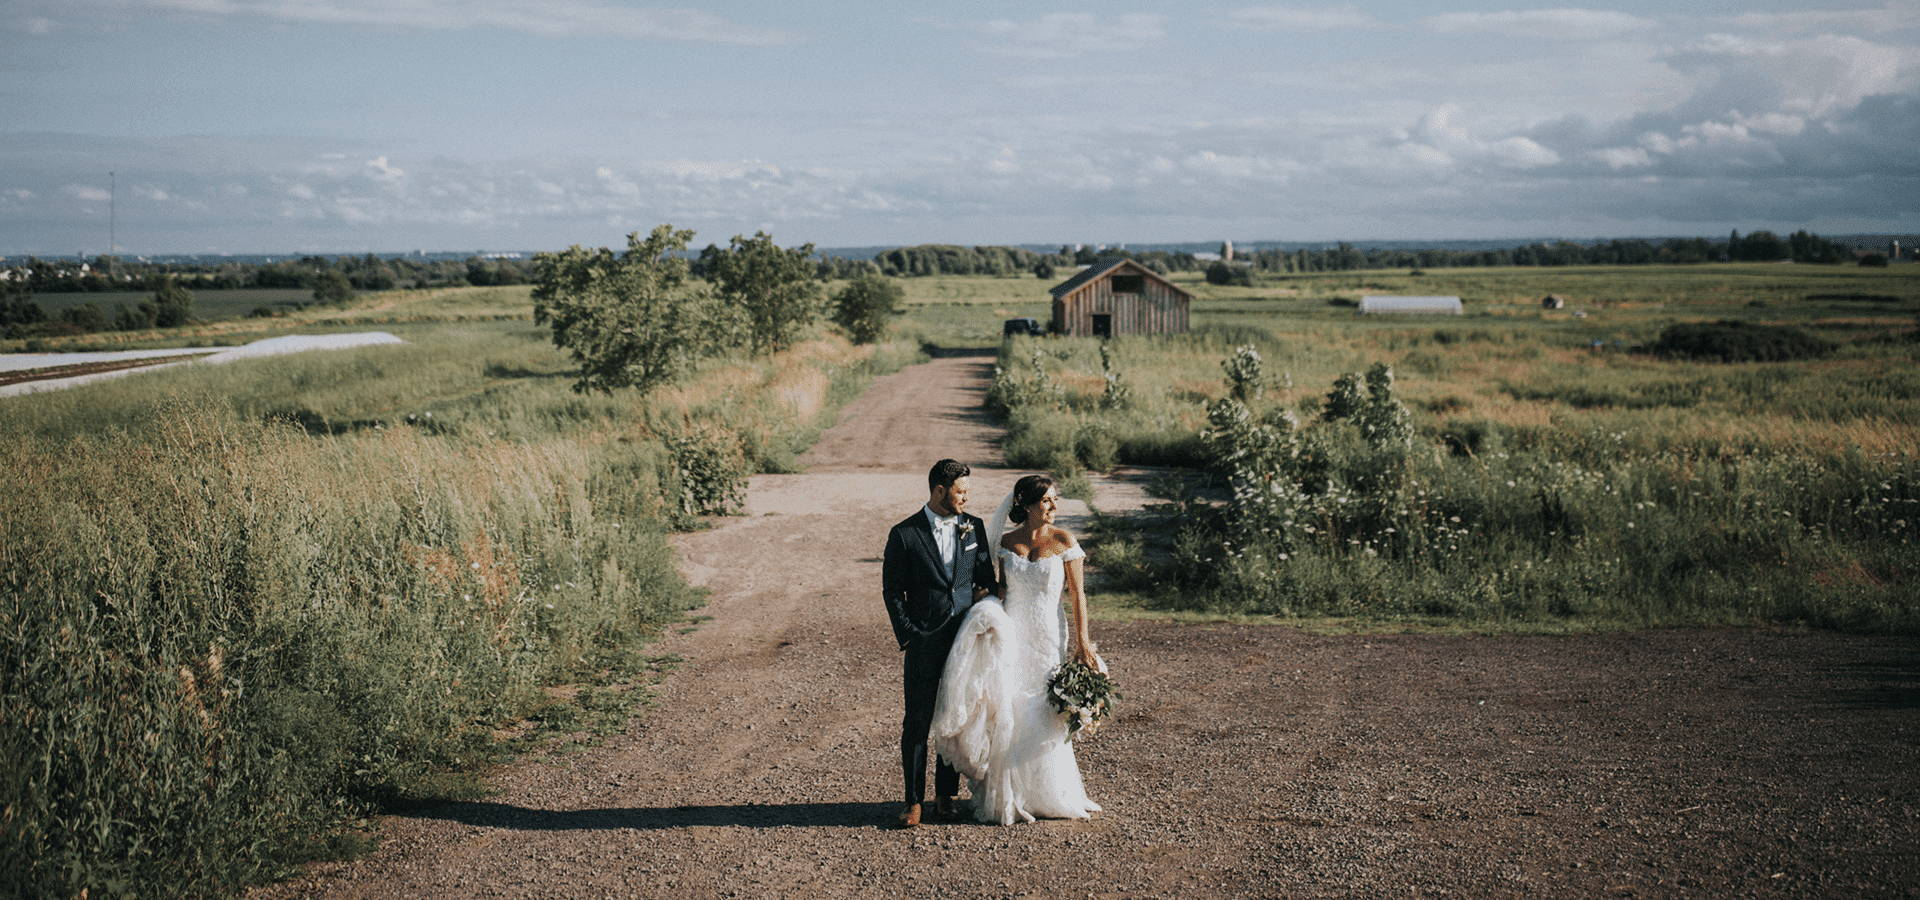 Wedding at Earth To Table Farm, Toronto, Ontario, Lori Waltenbury, 28